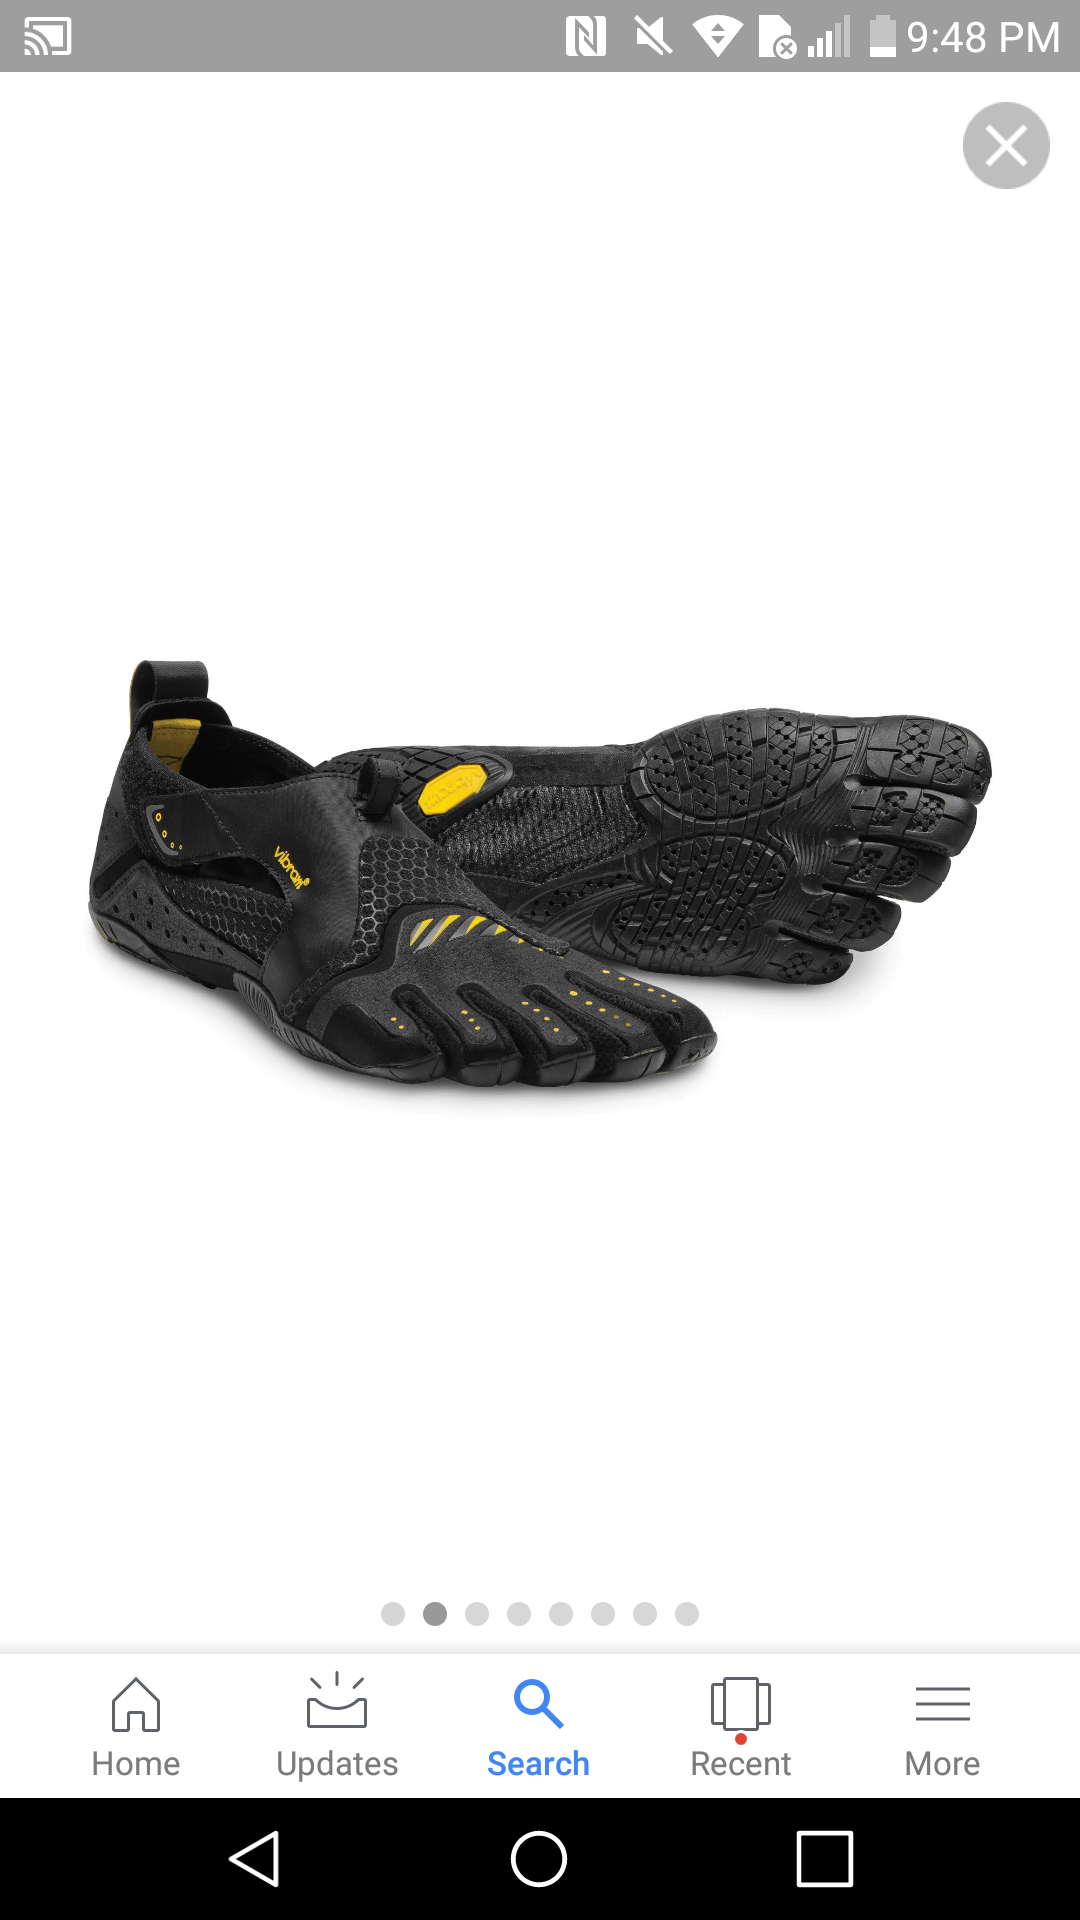 screenshot_2018-09-16-21-48-31-png.45716_Walking shoe recommendations?_Clothing_Squat the Planet_7:50 PM